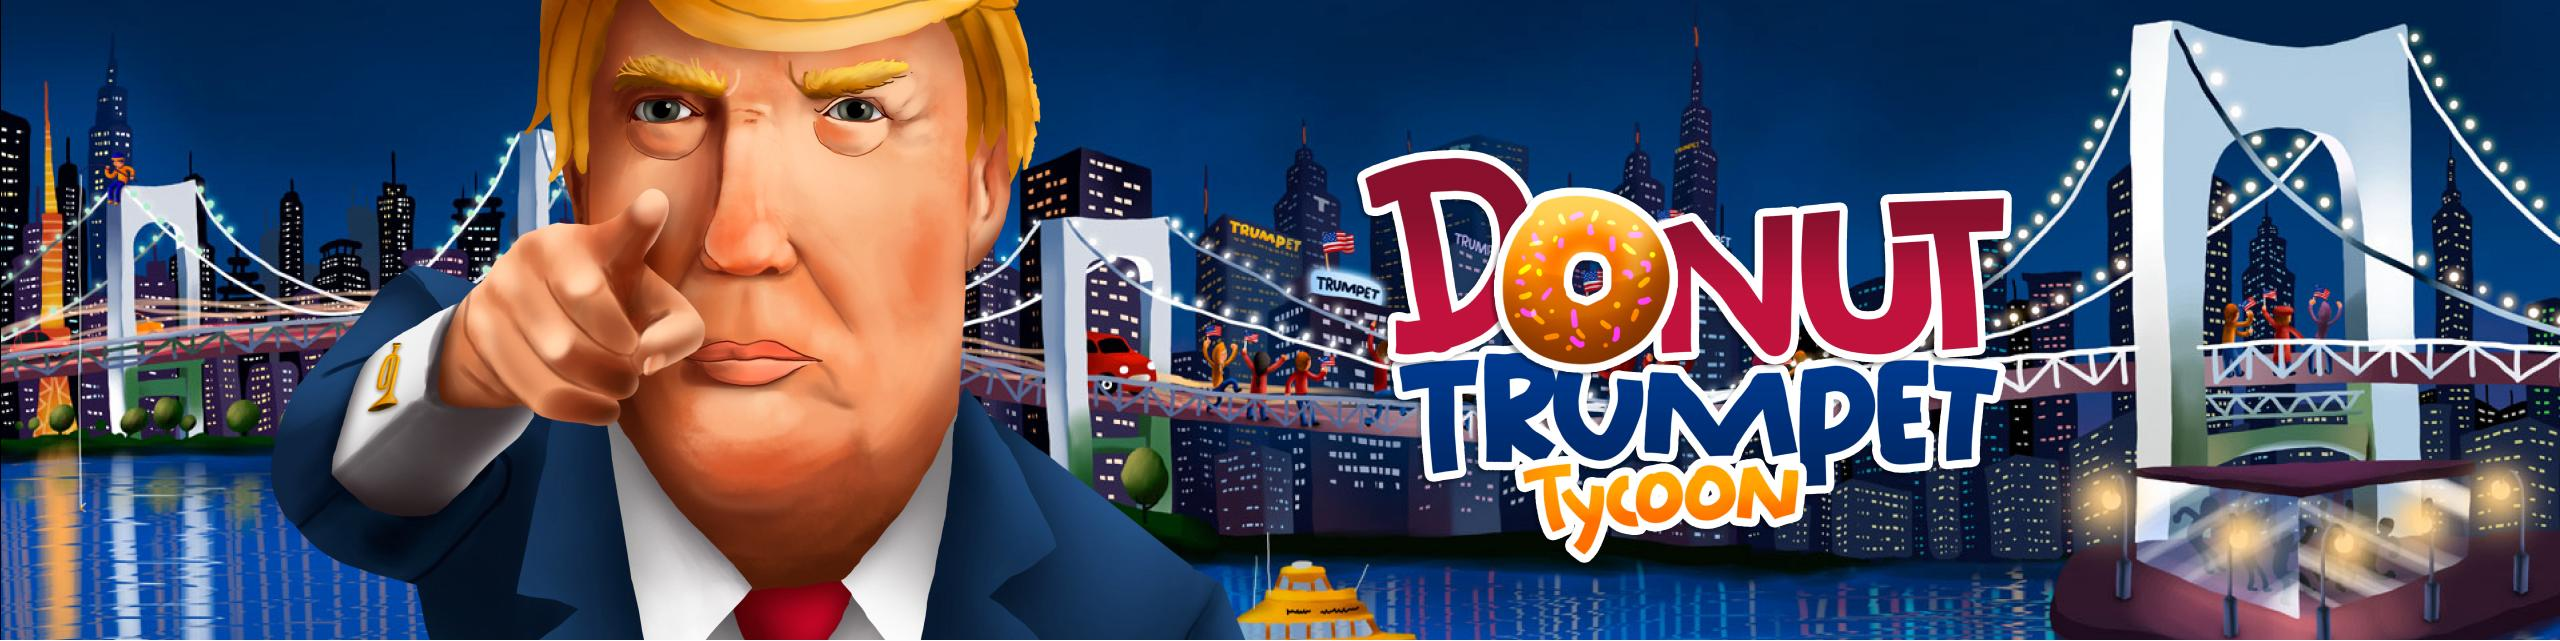 Donut Trumpet Tycoon graphic